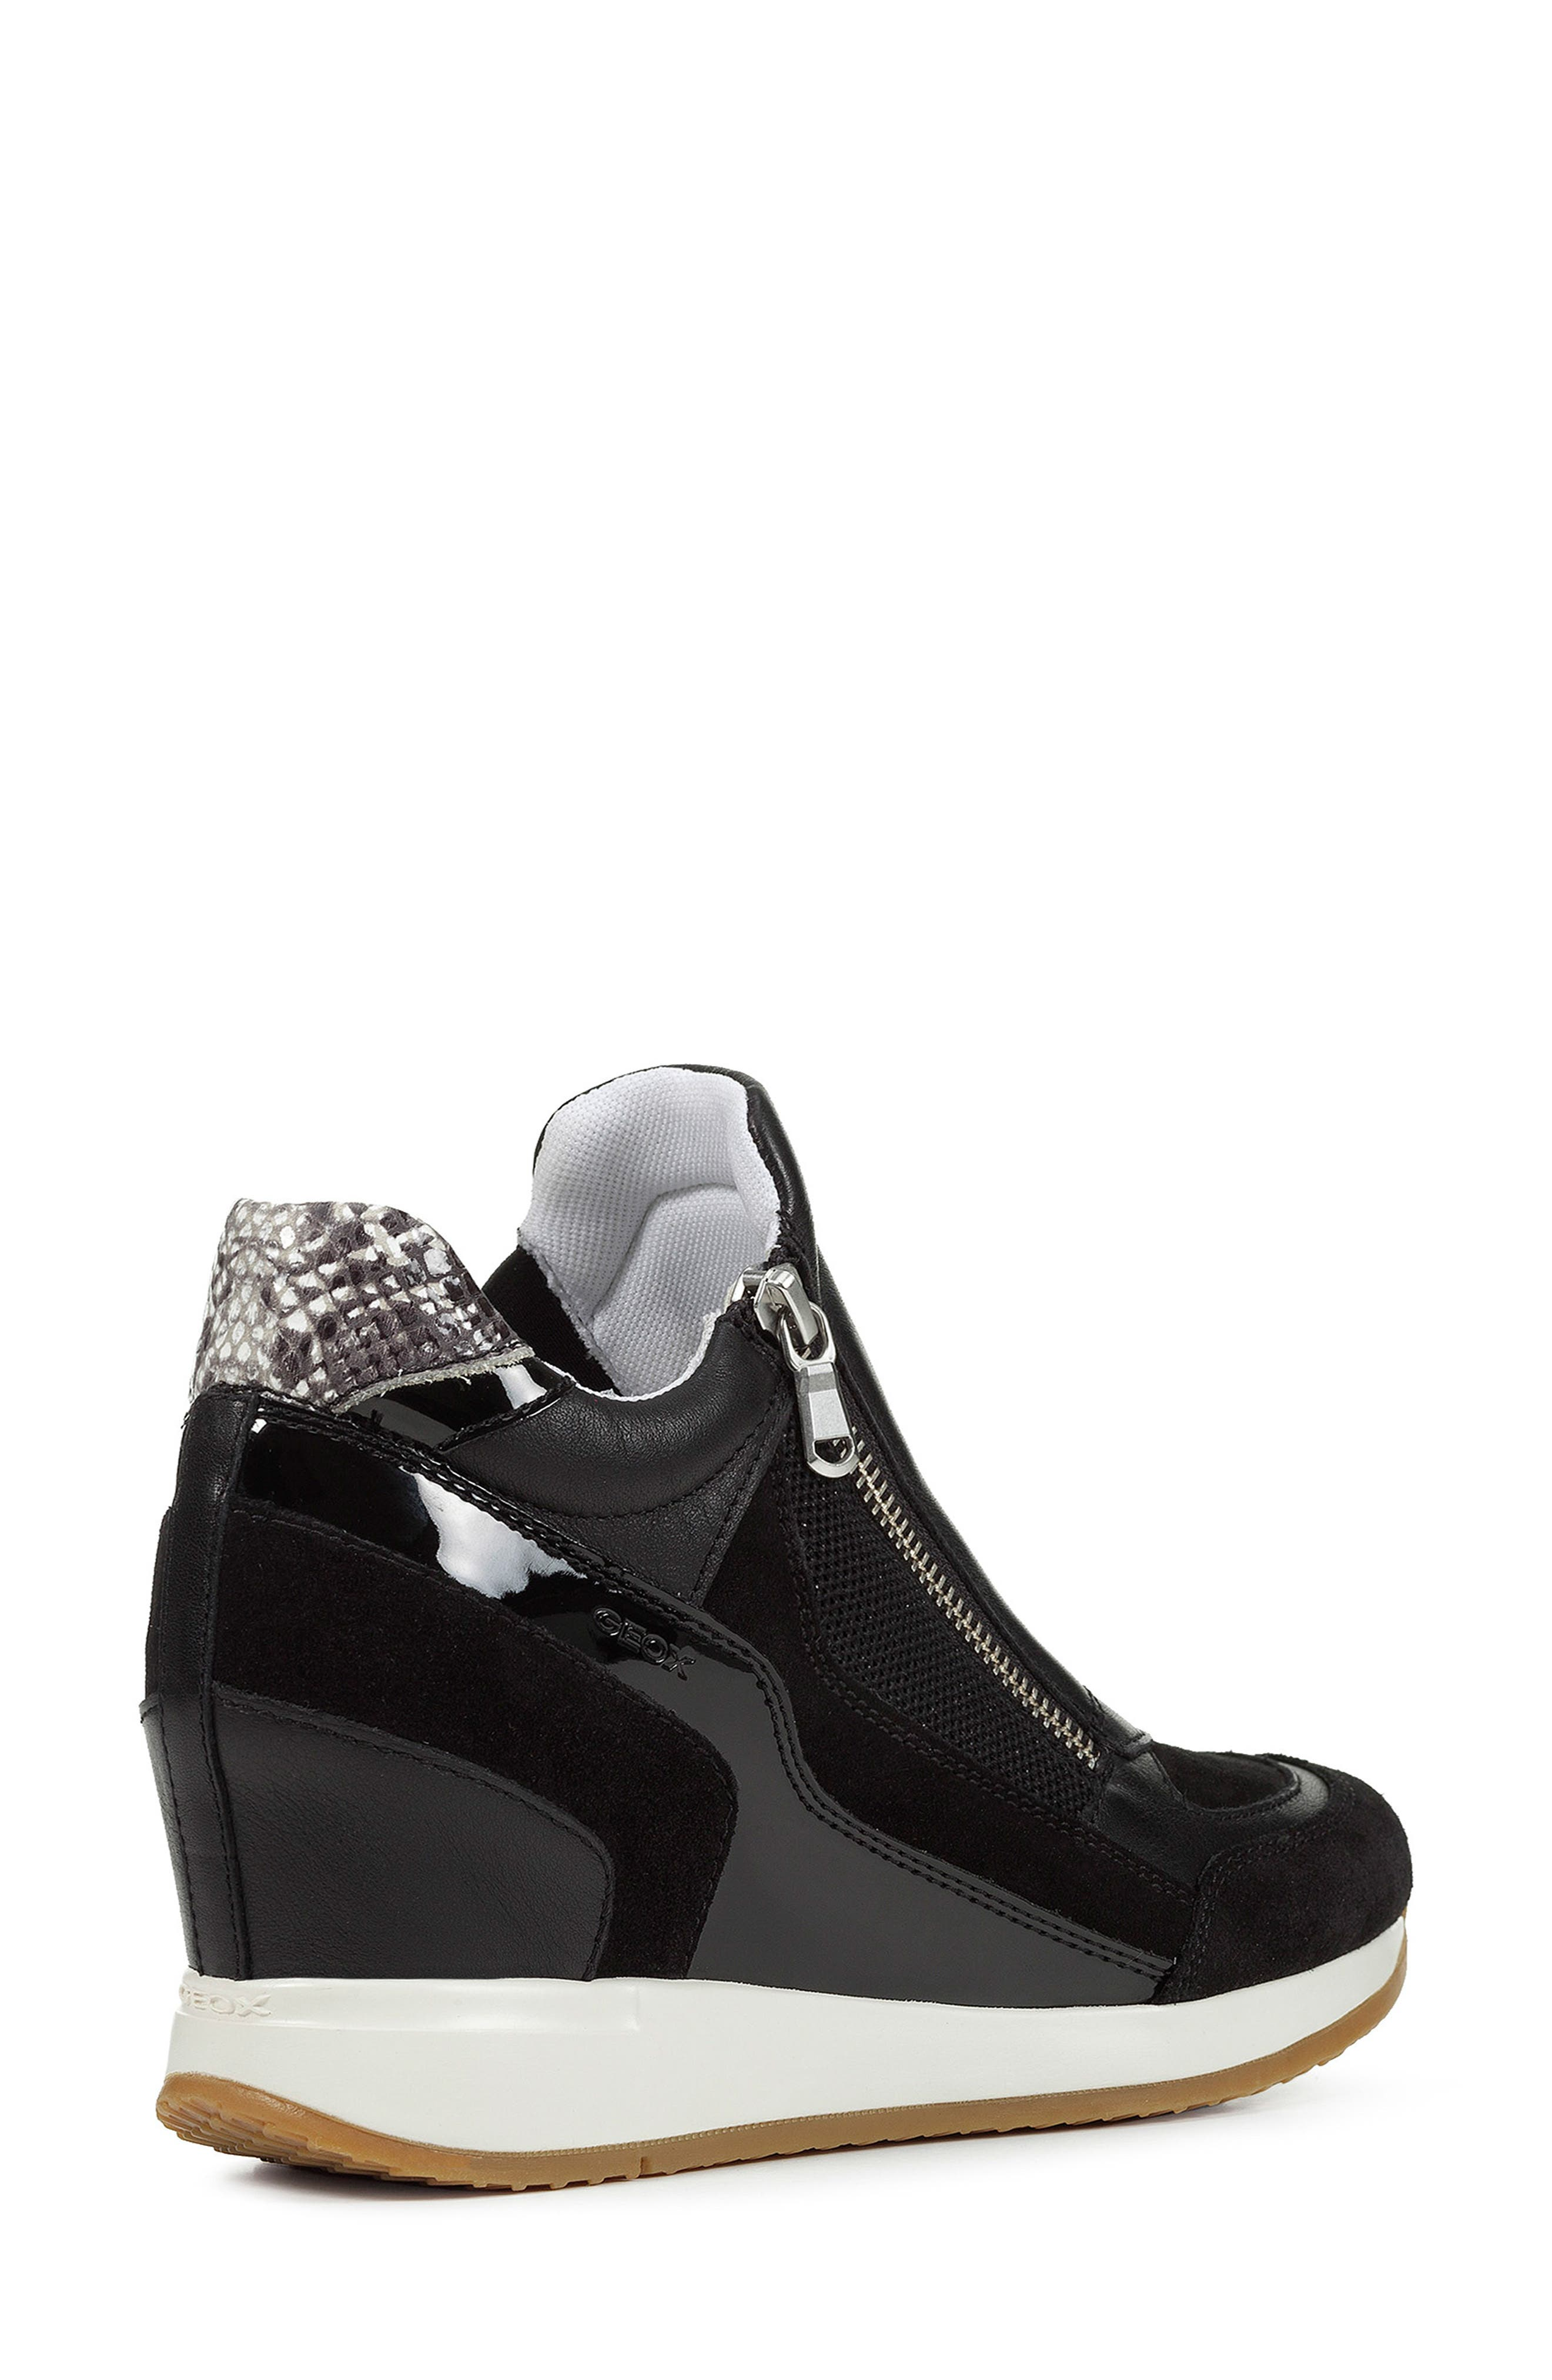 GEOX, Nydame Wedge Sneaker, Alternate thumbnail 7, color, BLACK/ BLACK LEATHER